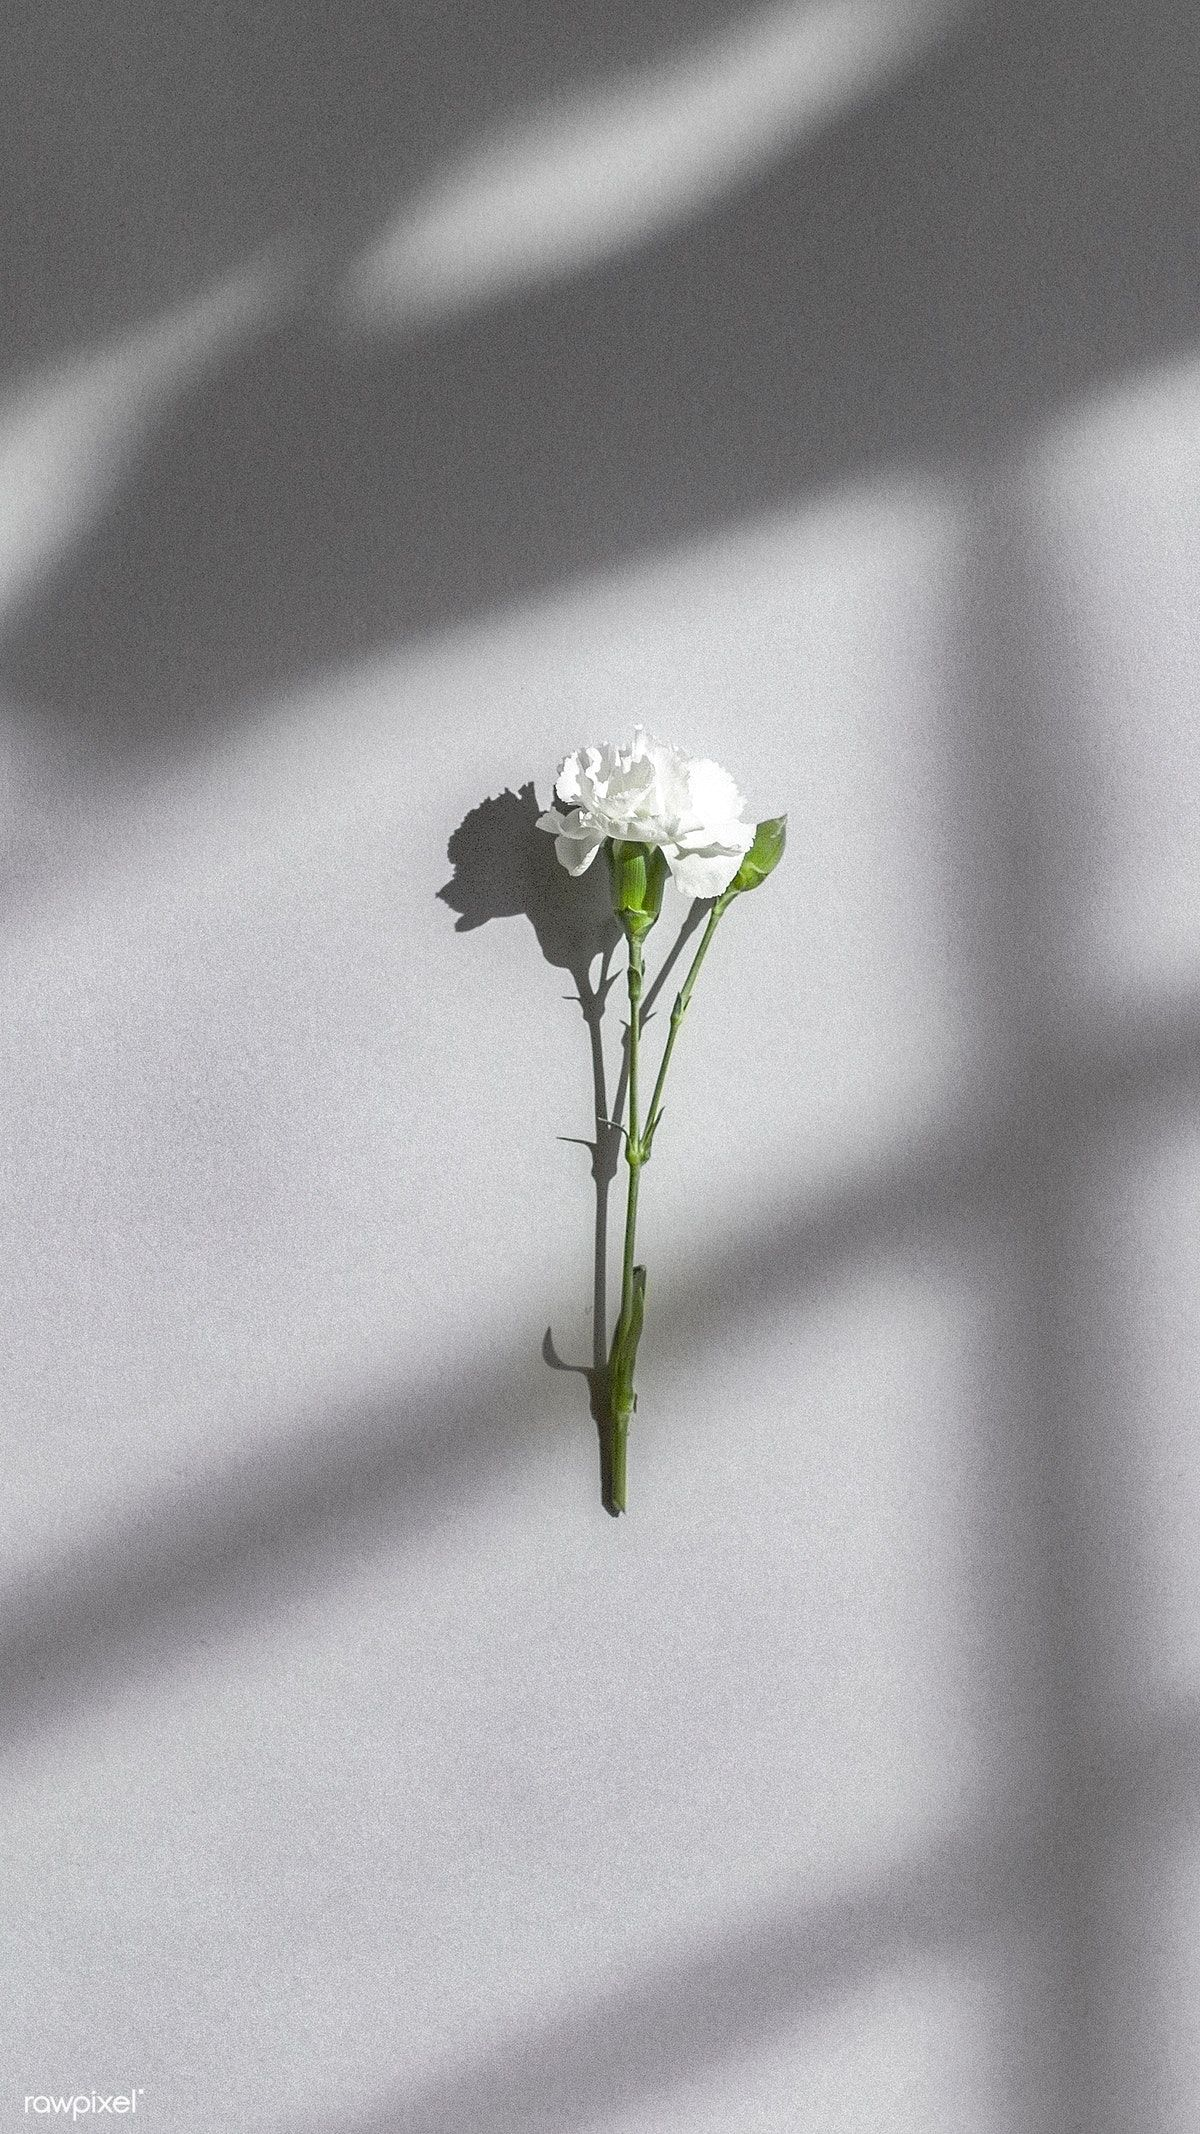 Download premium image of White carnation on a gray wall by McKinsey  about carnation, minimalist wallpaper, white flowers, gray, and shadow woman 1226359